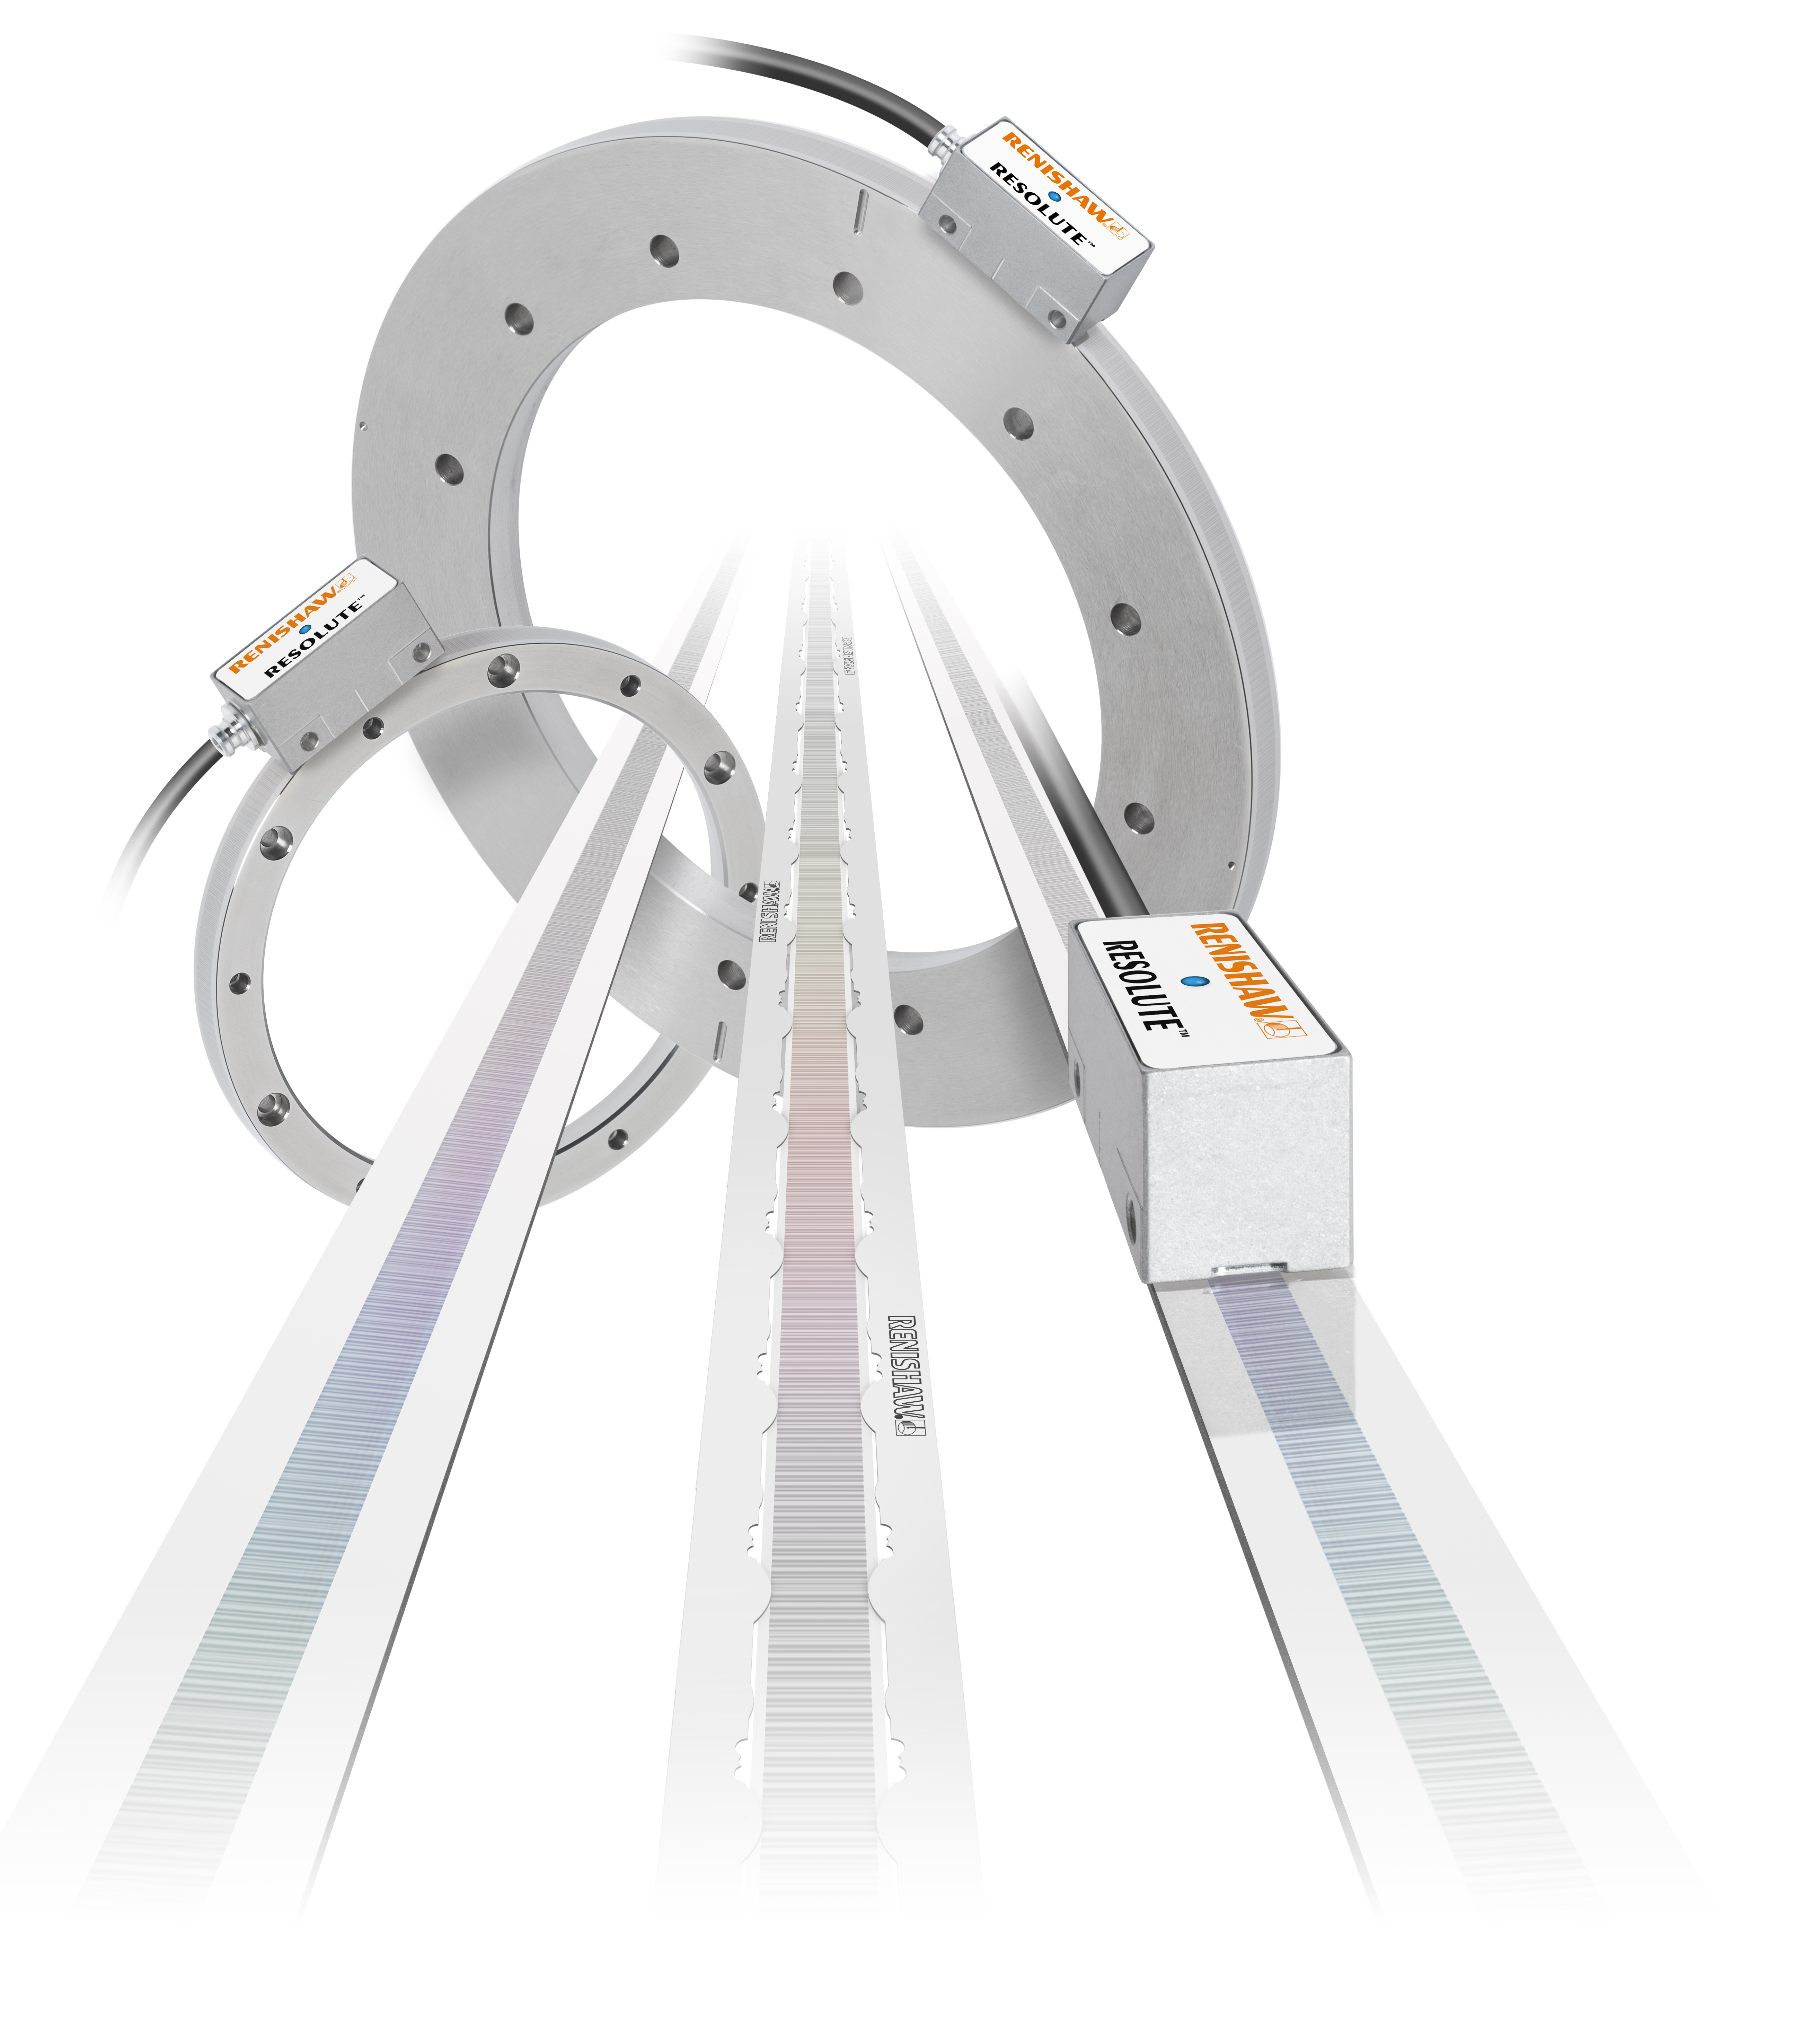 True absolute linear and absolute rotary encoders